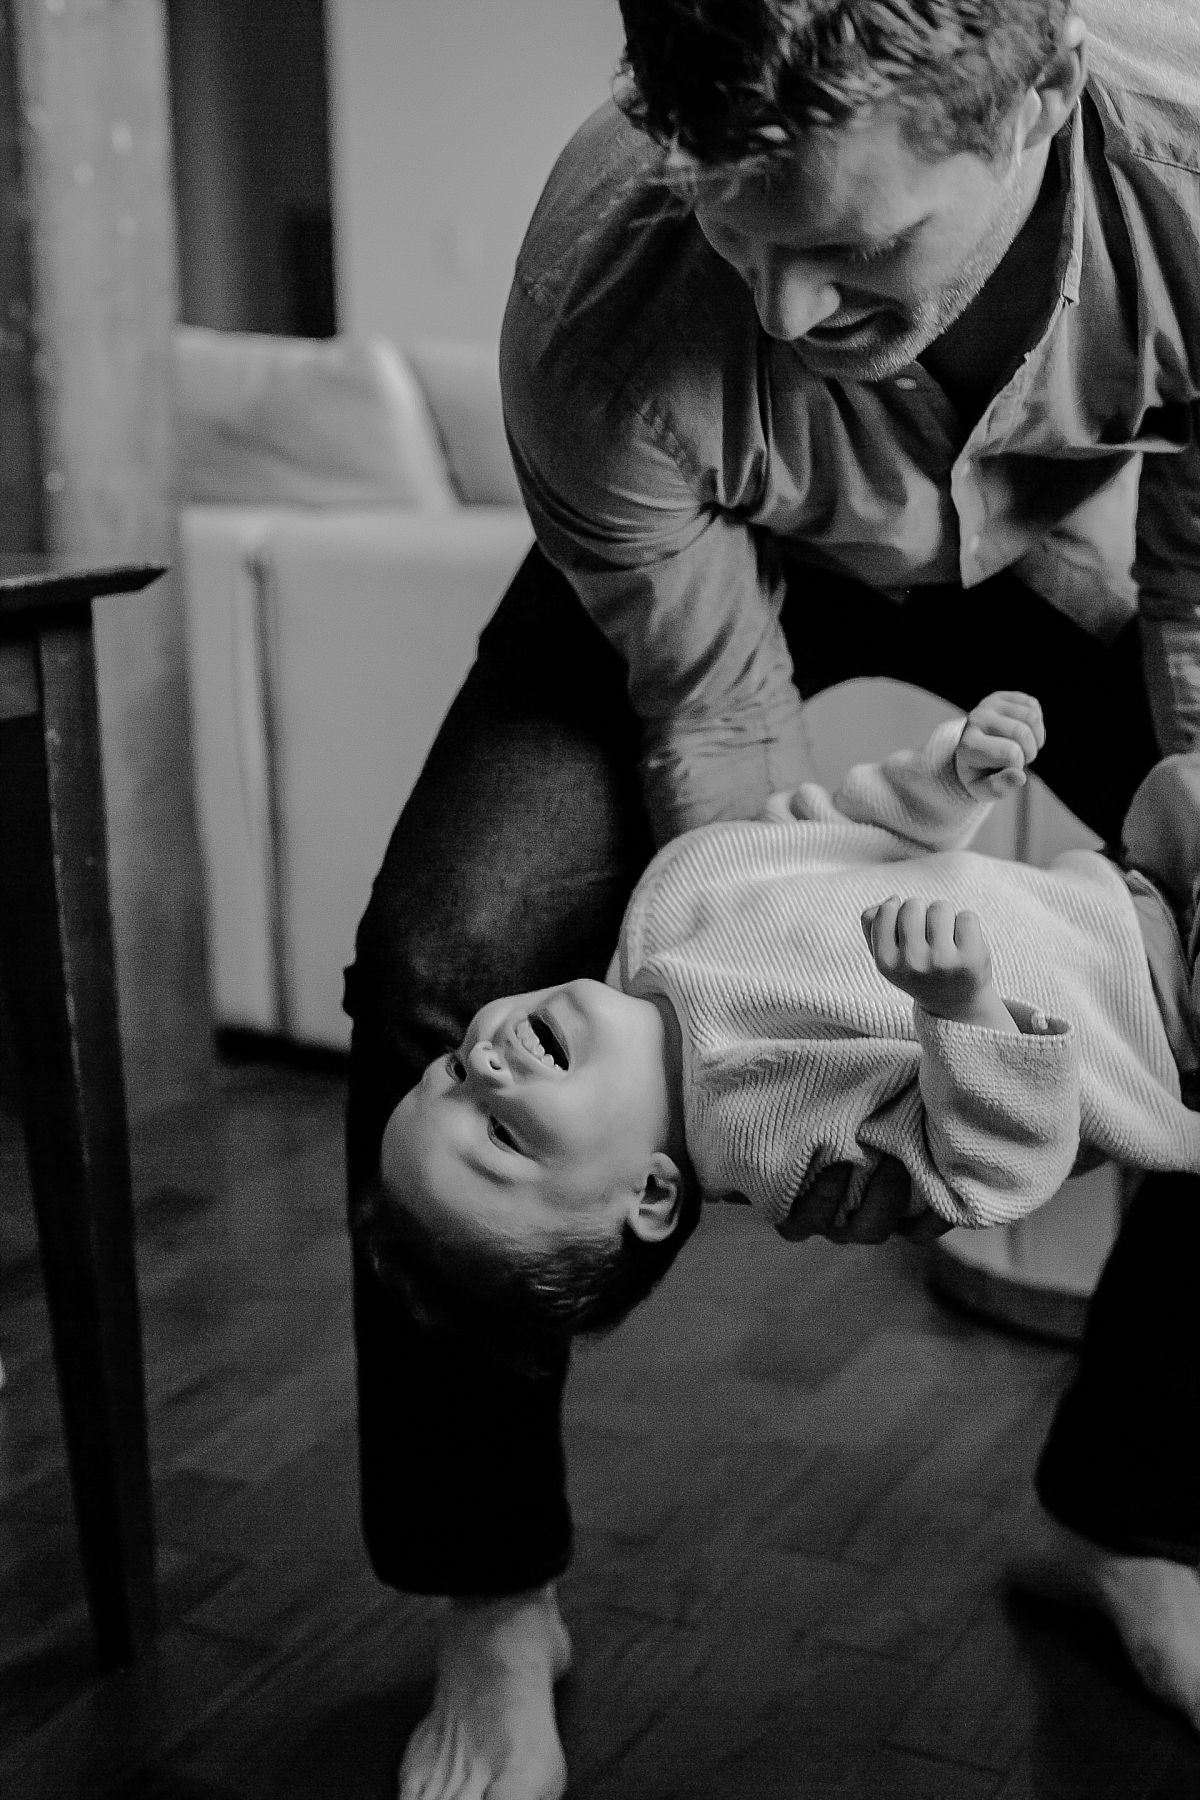 candid picture of dad holding son upside down while he is laughing. capturing real candid moments for your family during documentary family photo session. image by krystil mcdowall photography